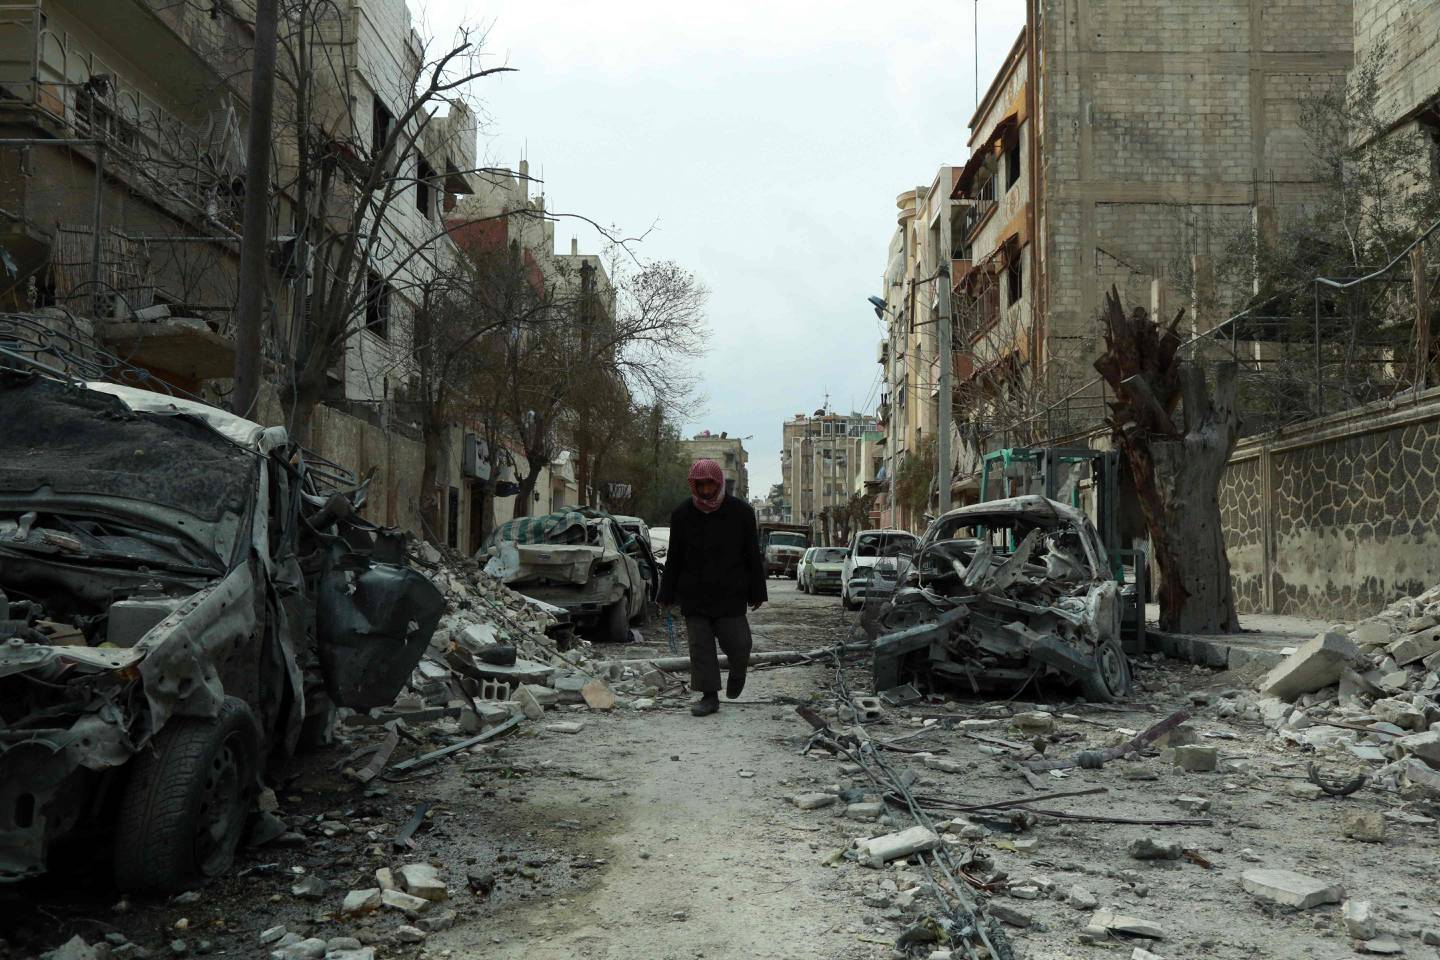 A picture taken on February 25, 2018, shows a Syrian man walking next to damaged buildings following regime air strikes in the Syrian rebel-held town of Douma, in the besieged Eastern Ghouta region on the outskirts of the capital Damascus. New regime air strikes and heavy clashes shook Syria's rebel enclave of Eastern Ghouta on Sunday despite a UN demand for a ceasefire to end one of the most ferocious assaults of Syria's civil war. / AFP PHOTO / HAMZA AL-AJWEH